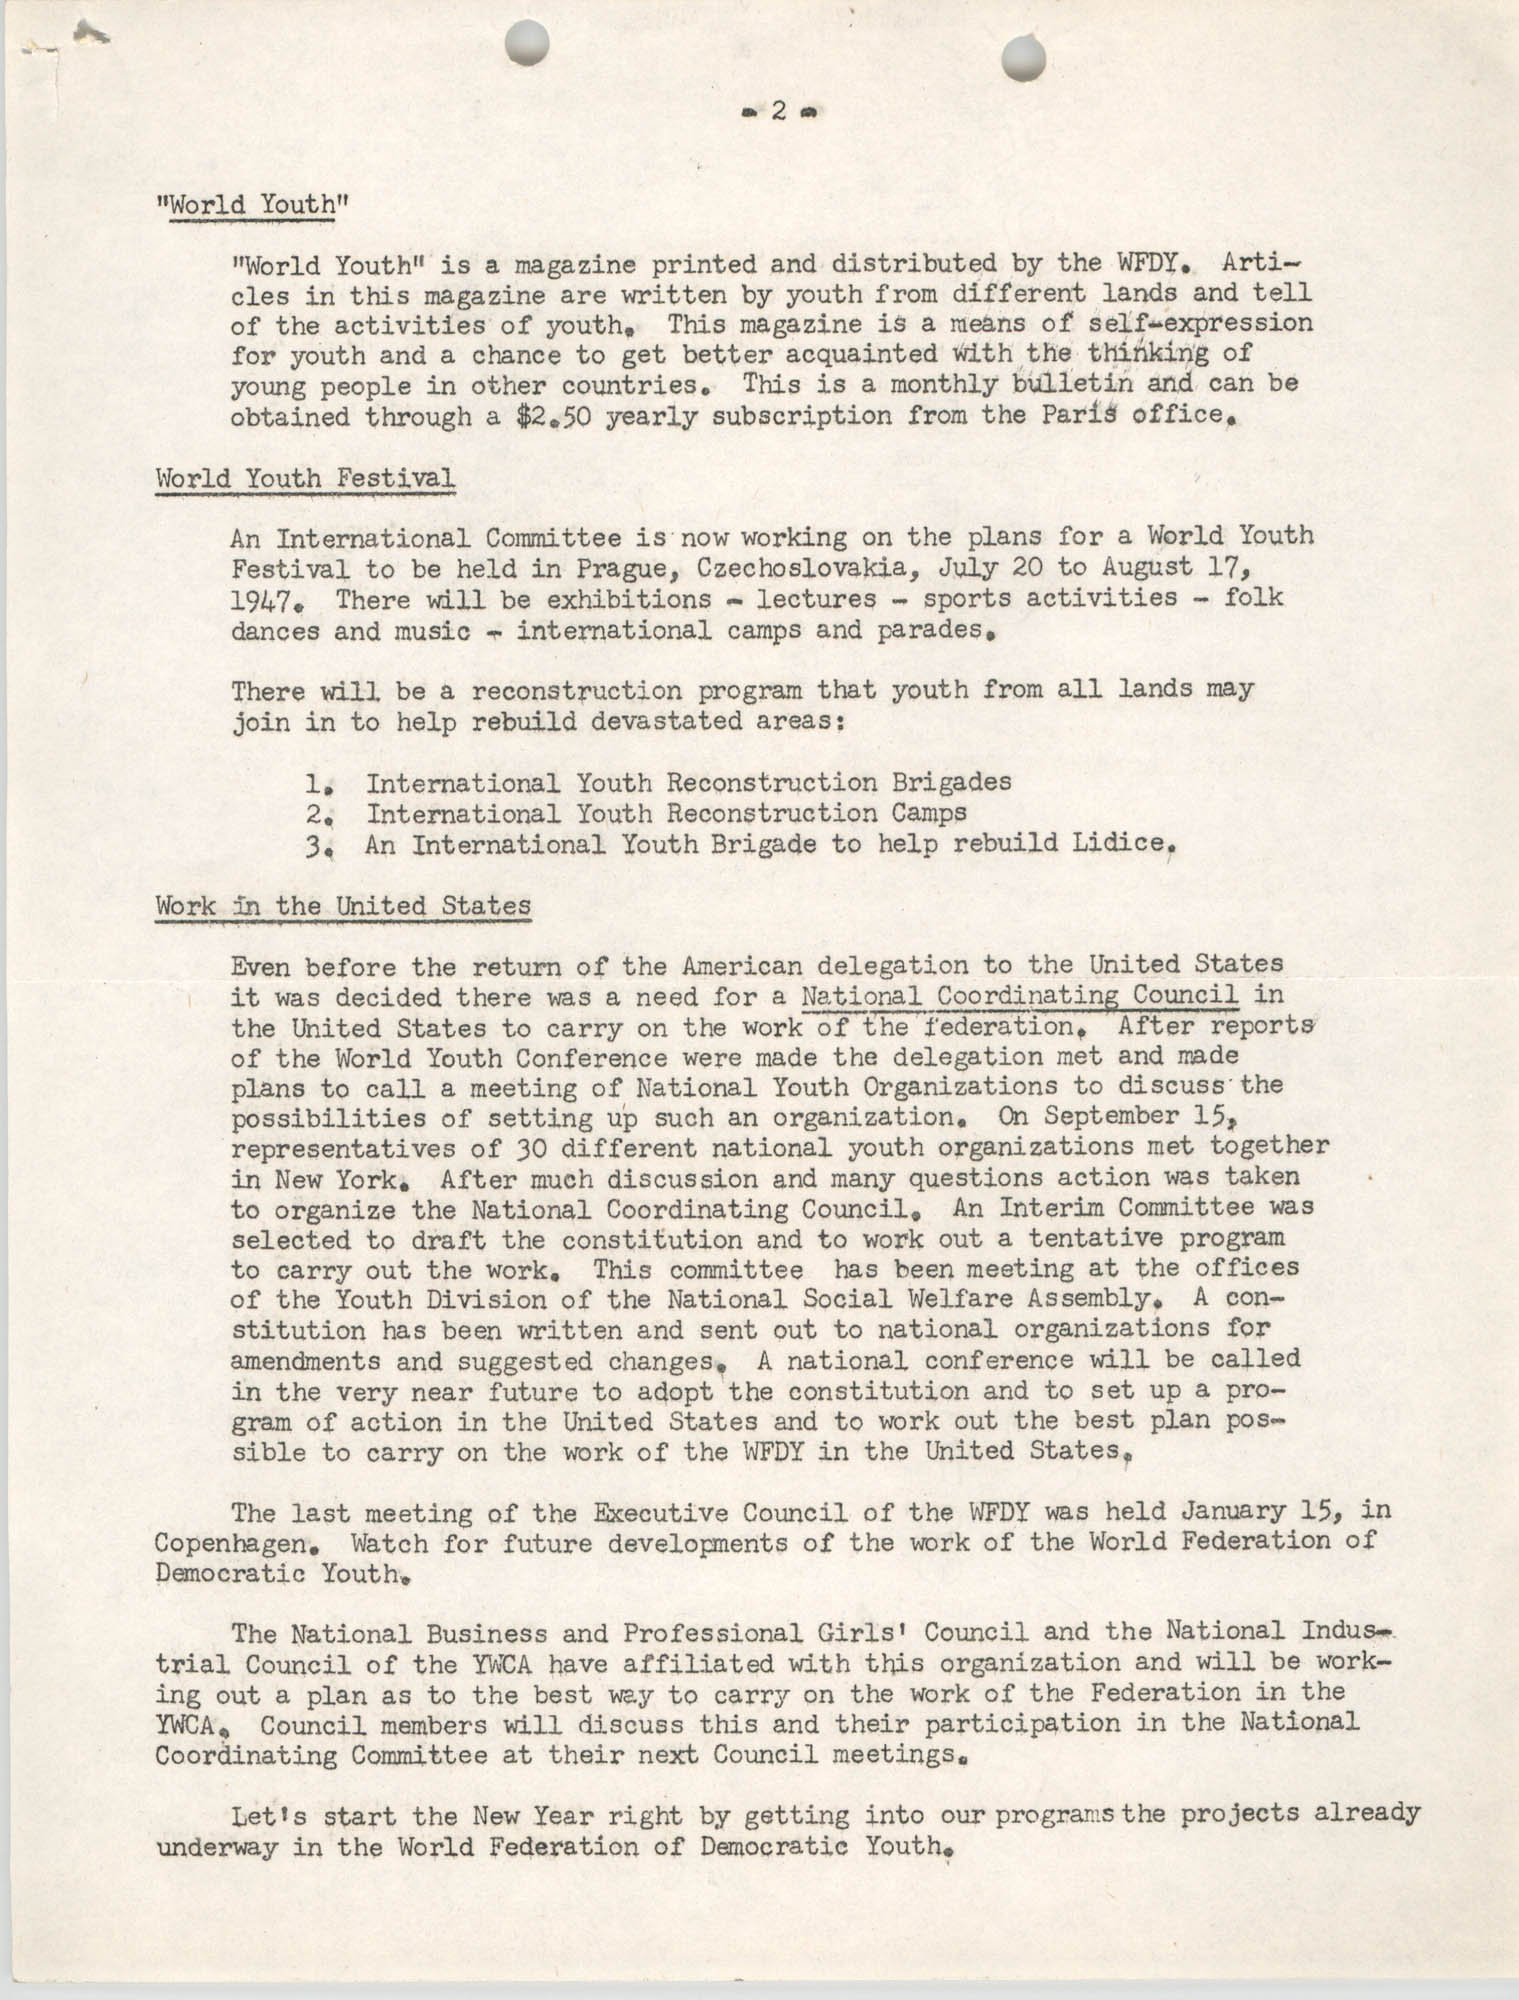 National Board of the Y.W.C.A. Business and Professional Girls Council Correspondence, 1947, Page 2